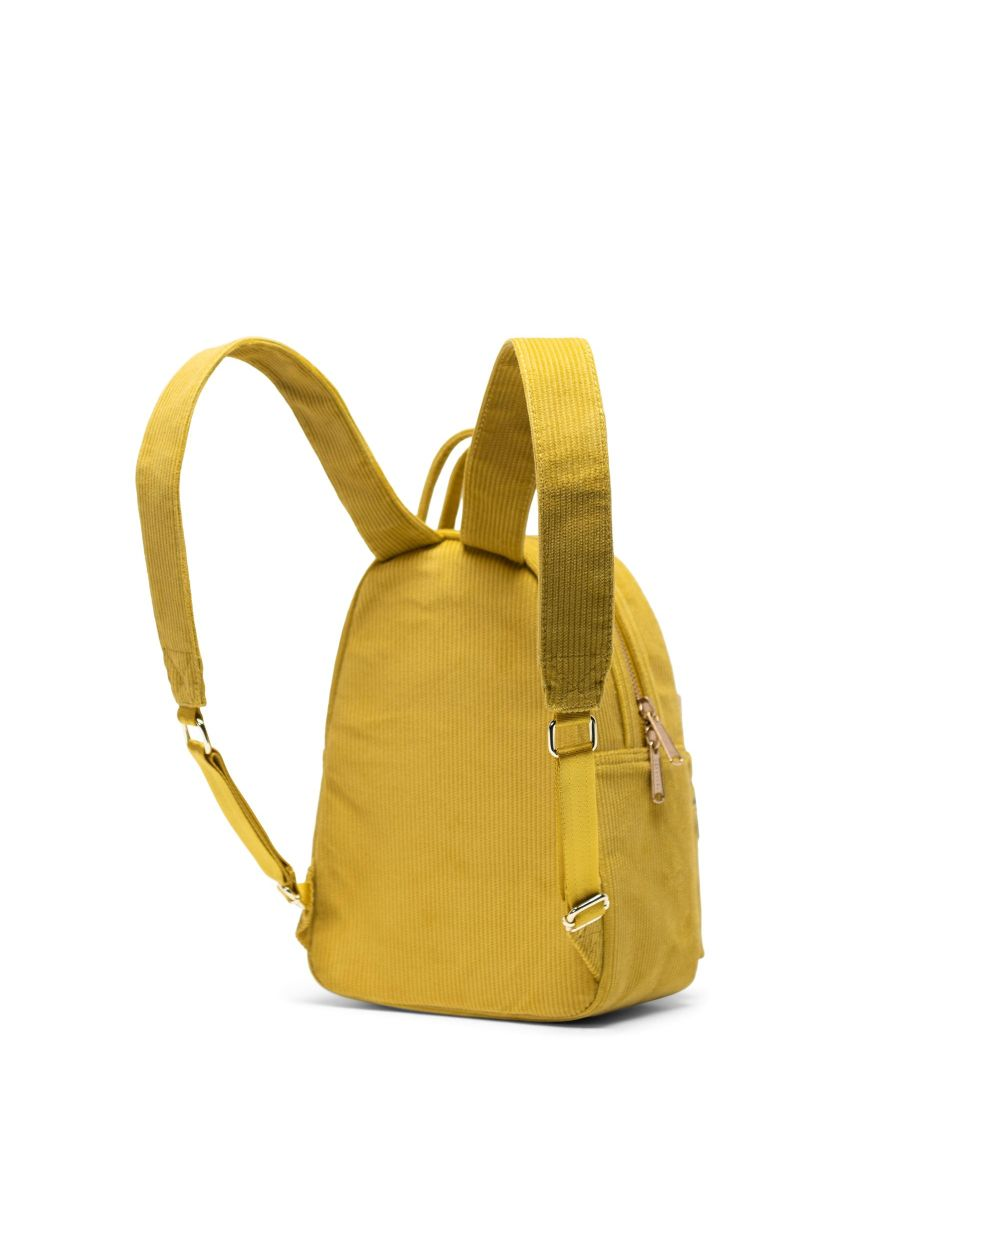 NOVA BACKPACK MINI CORDUROY - GOLDEN PALM